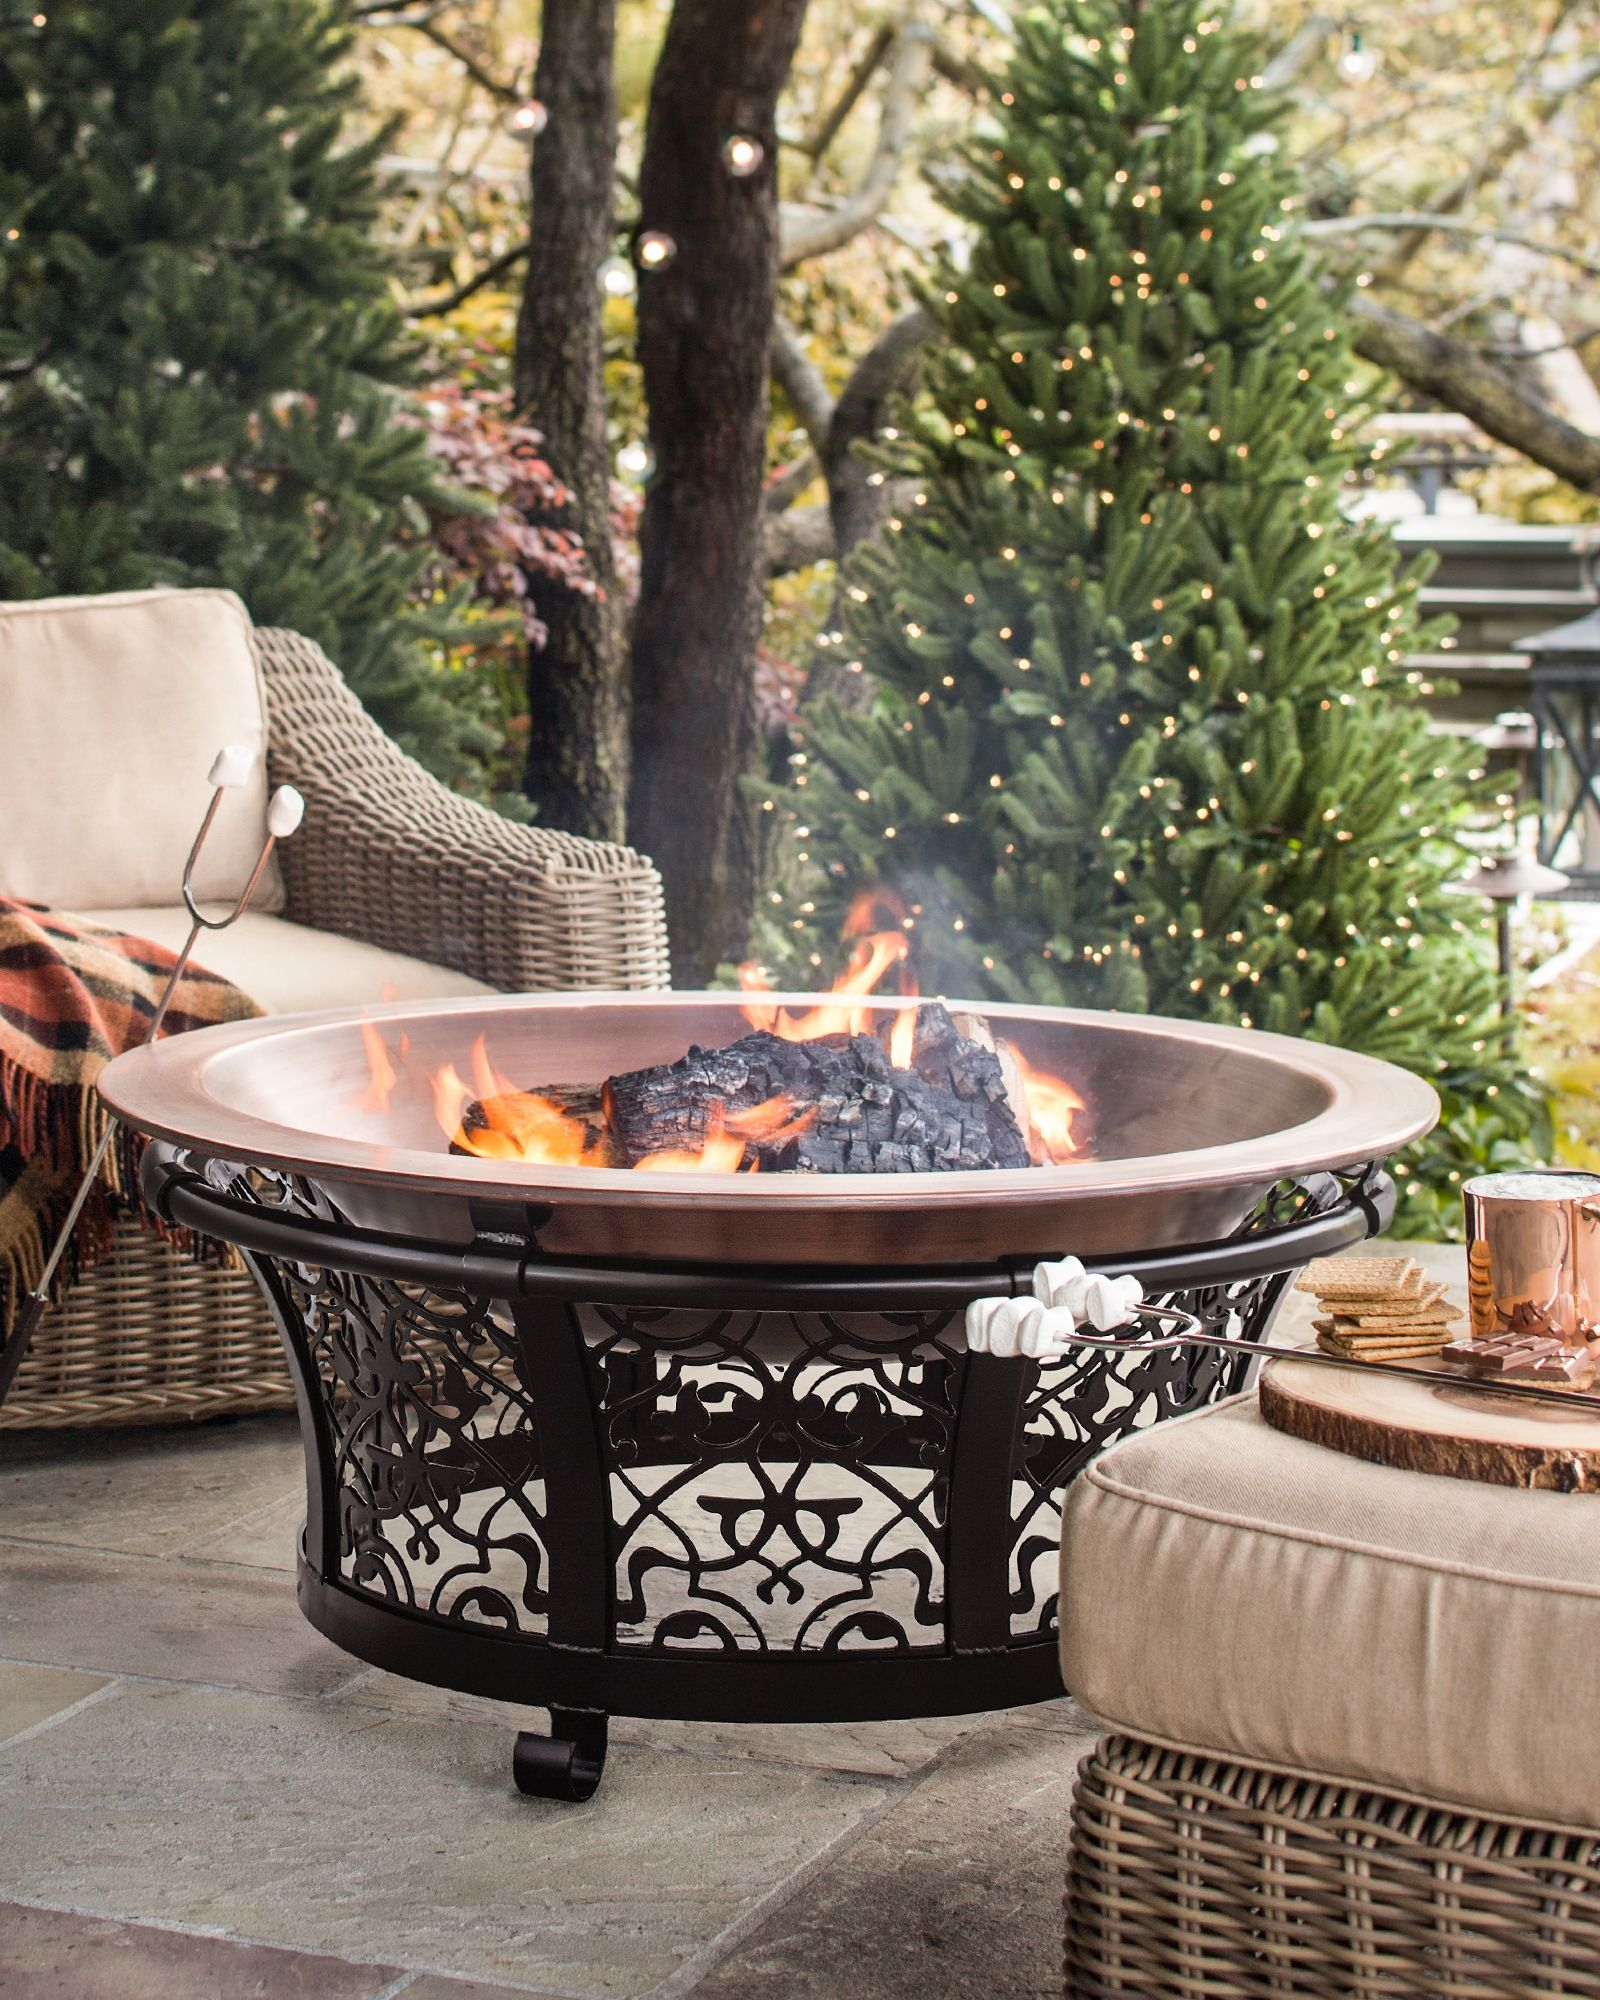 our heirloom quality copper fire pit provides countless evenings